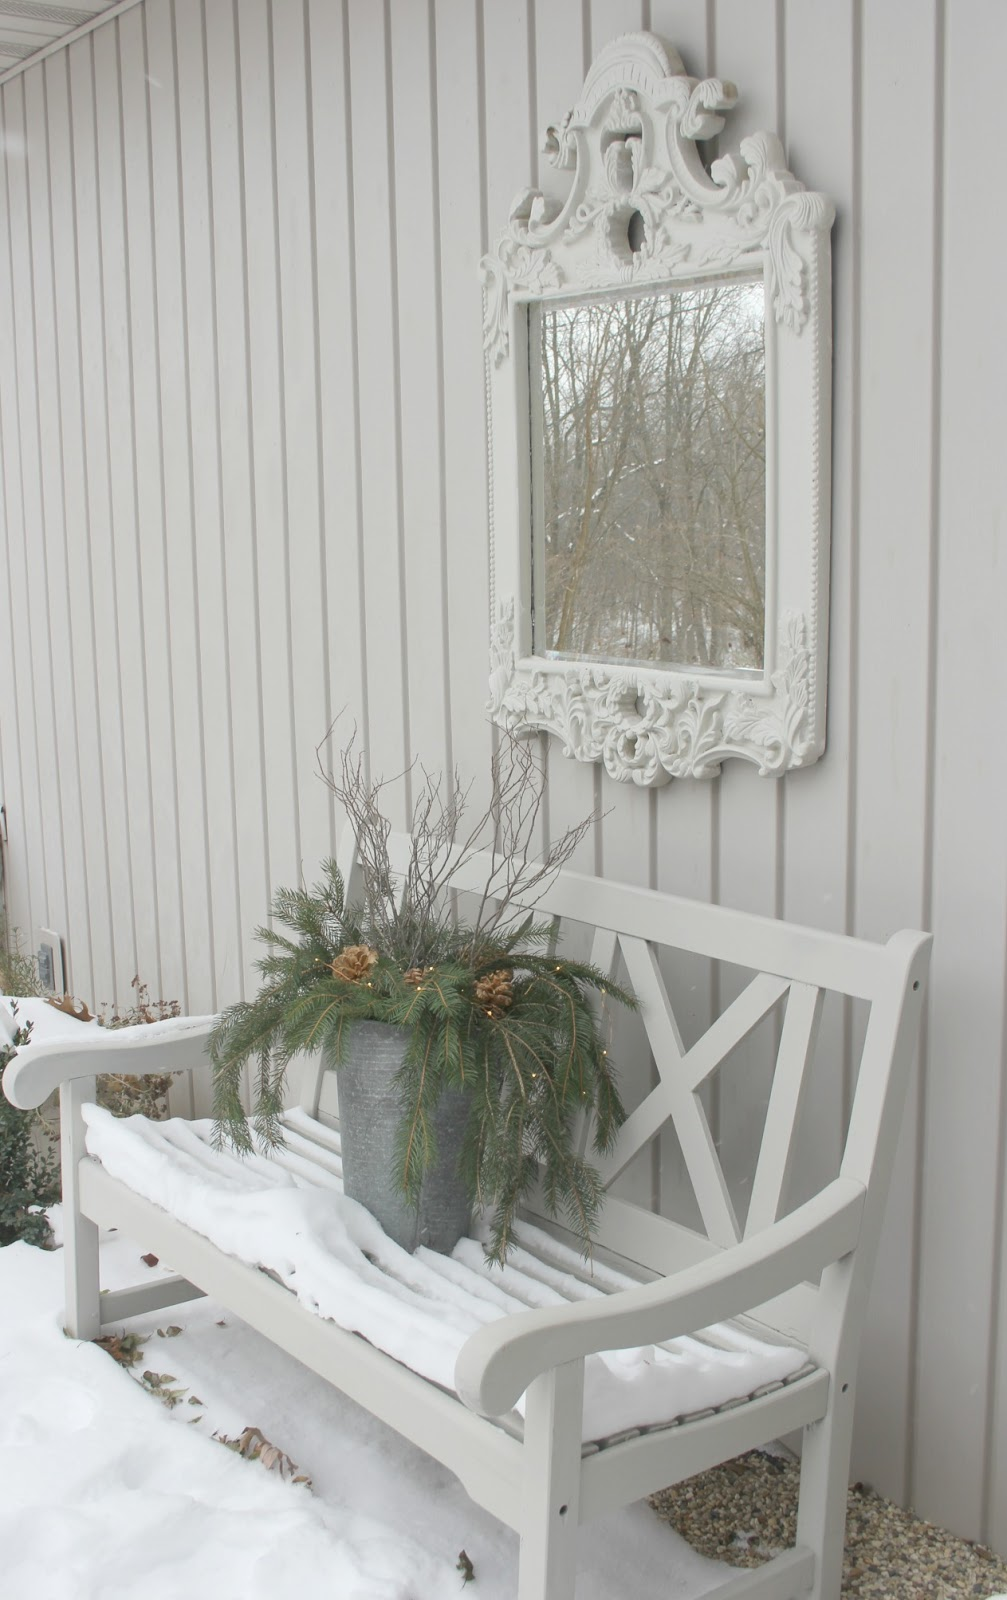 Winter holiday vignette with snow, white bench, and French mirror - Hello Lovely Studio